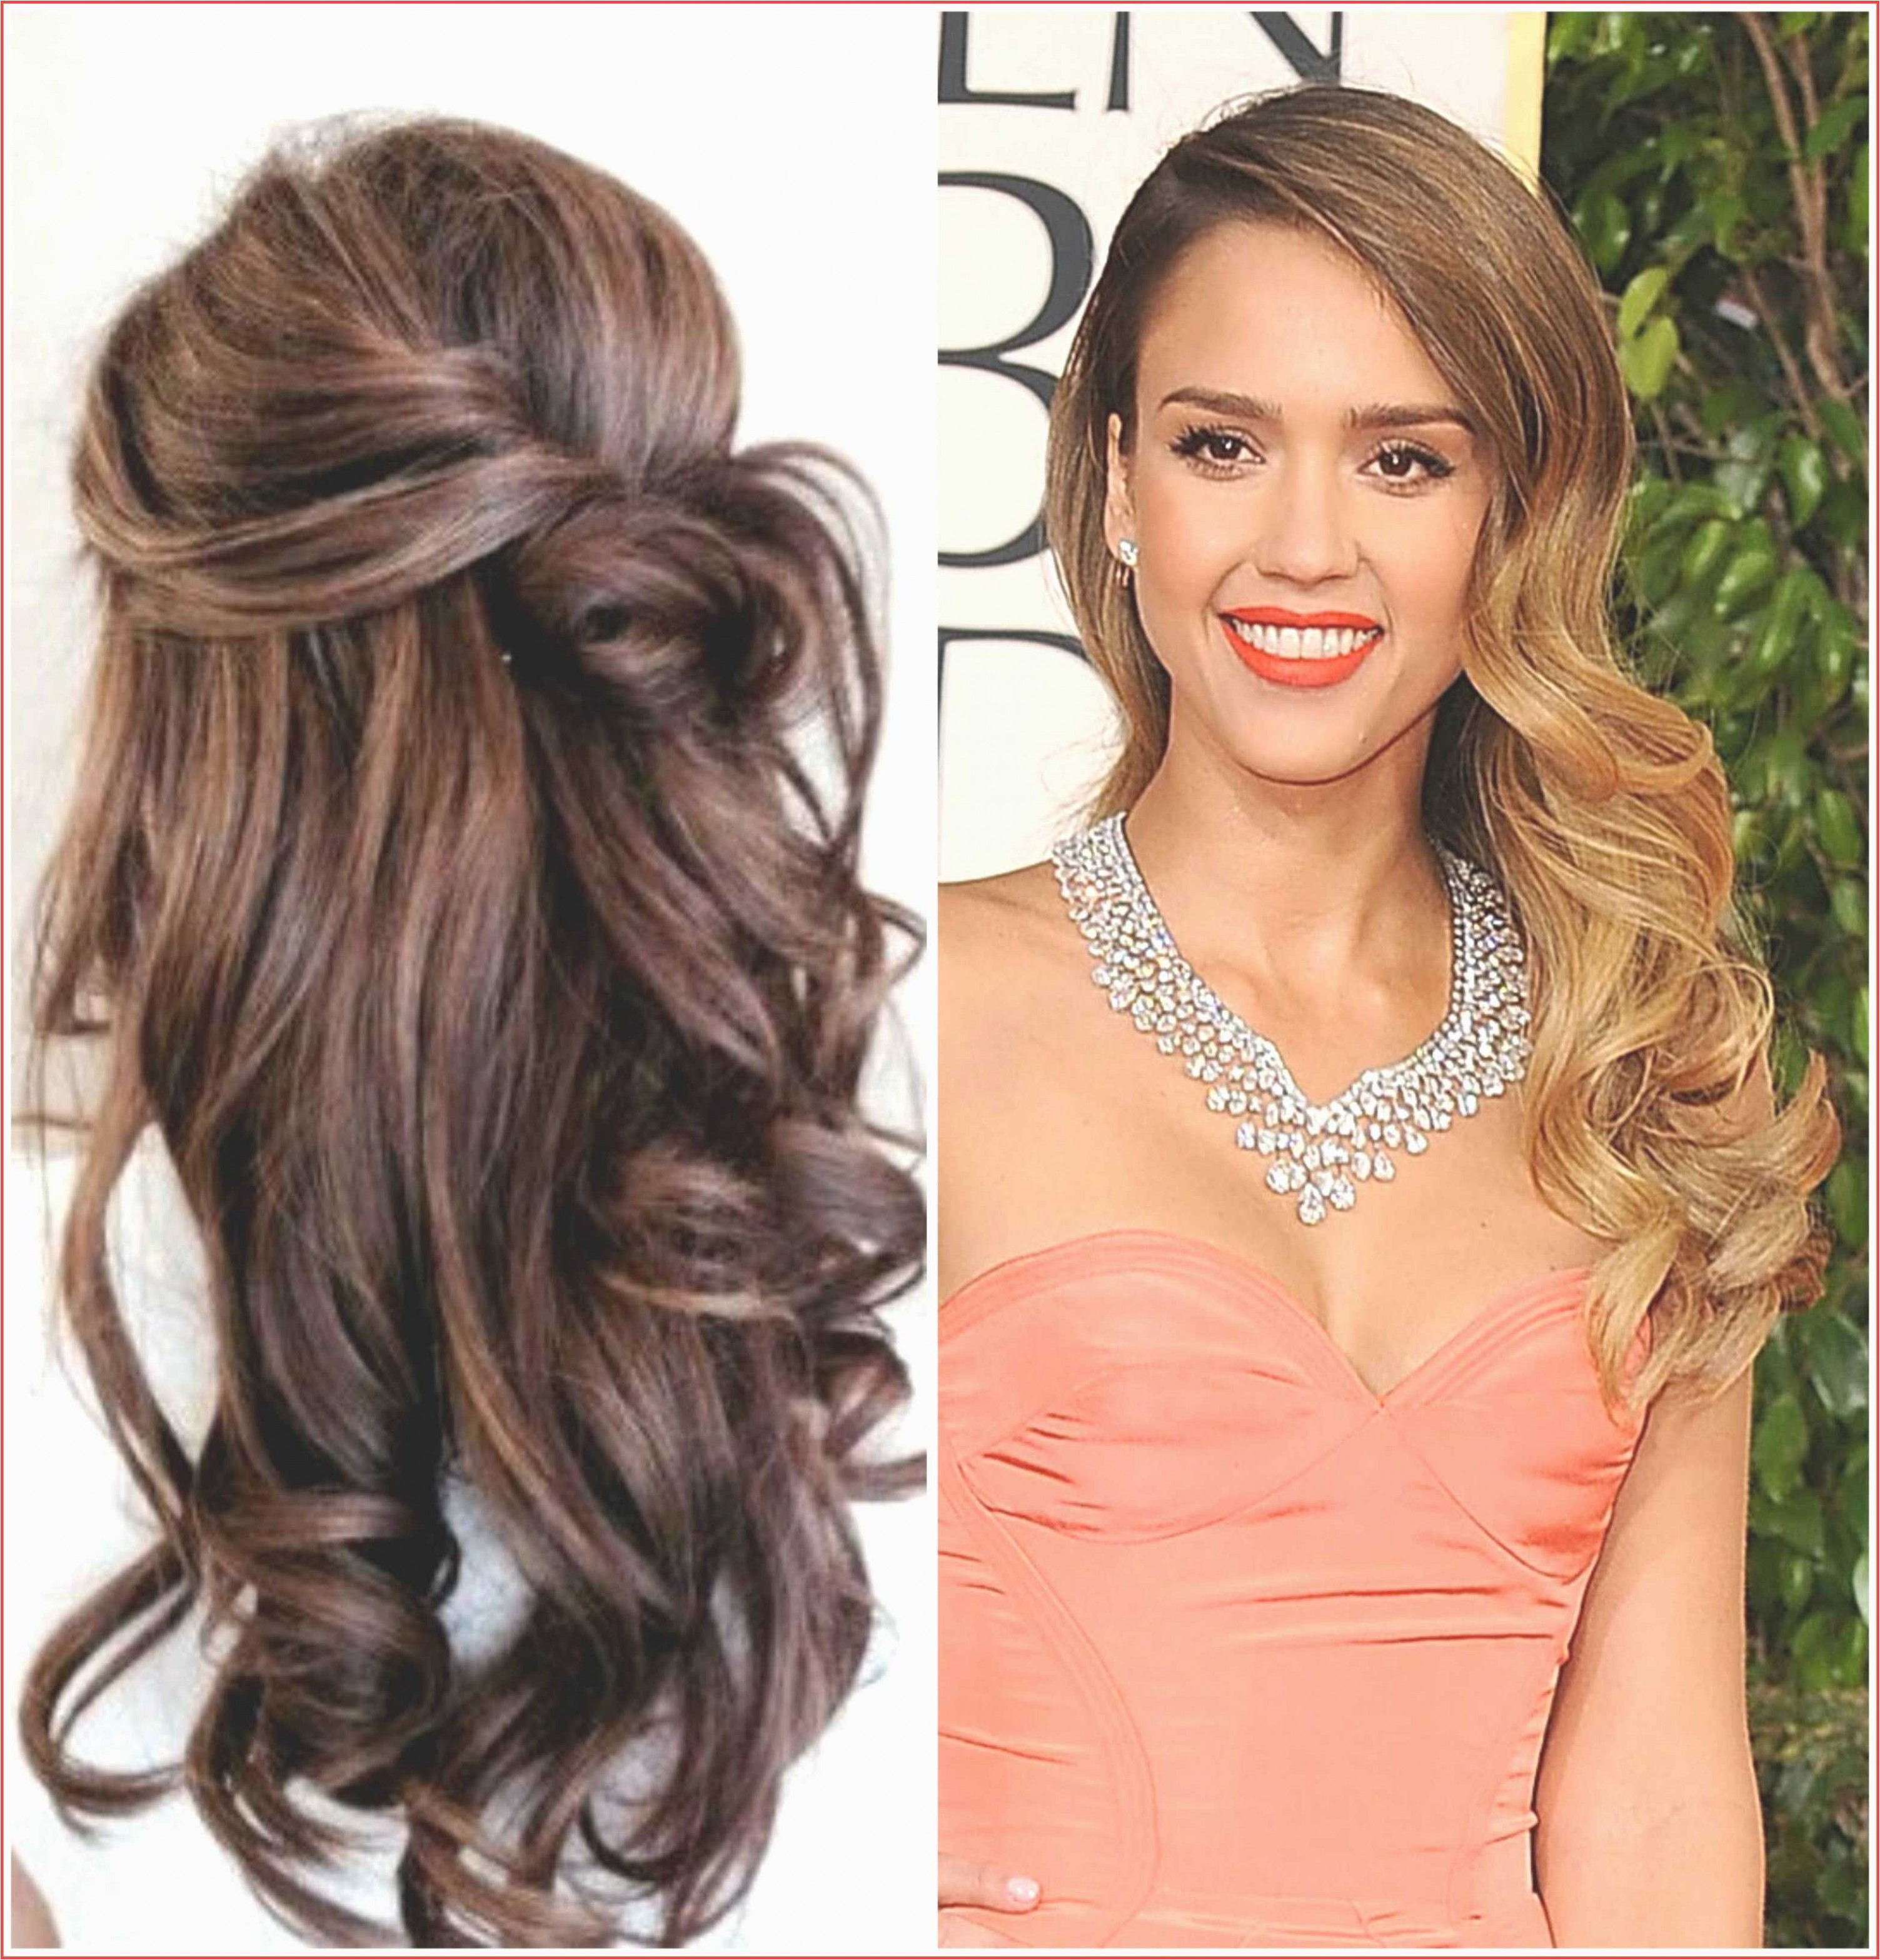 Easy Girl Hairstyles Inspirational New Cute Easy Hairstyles for Long Hair – Aidasmakeup Easy Girl